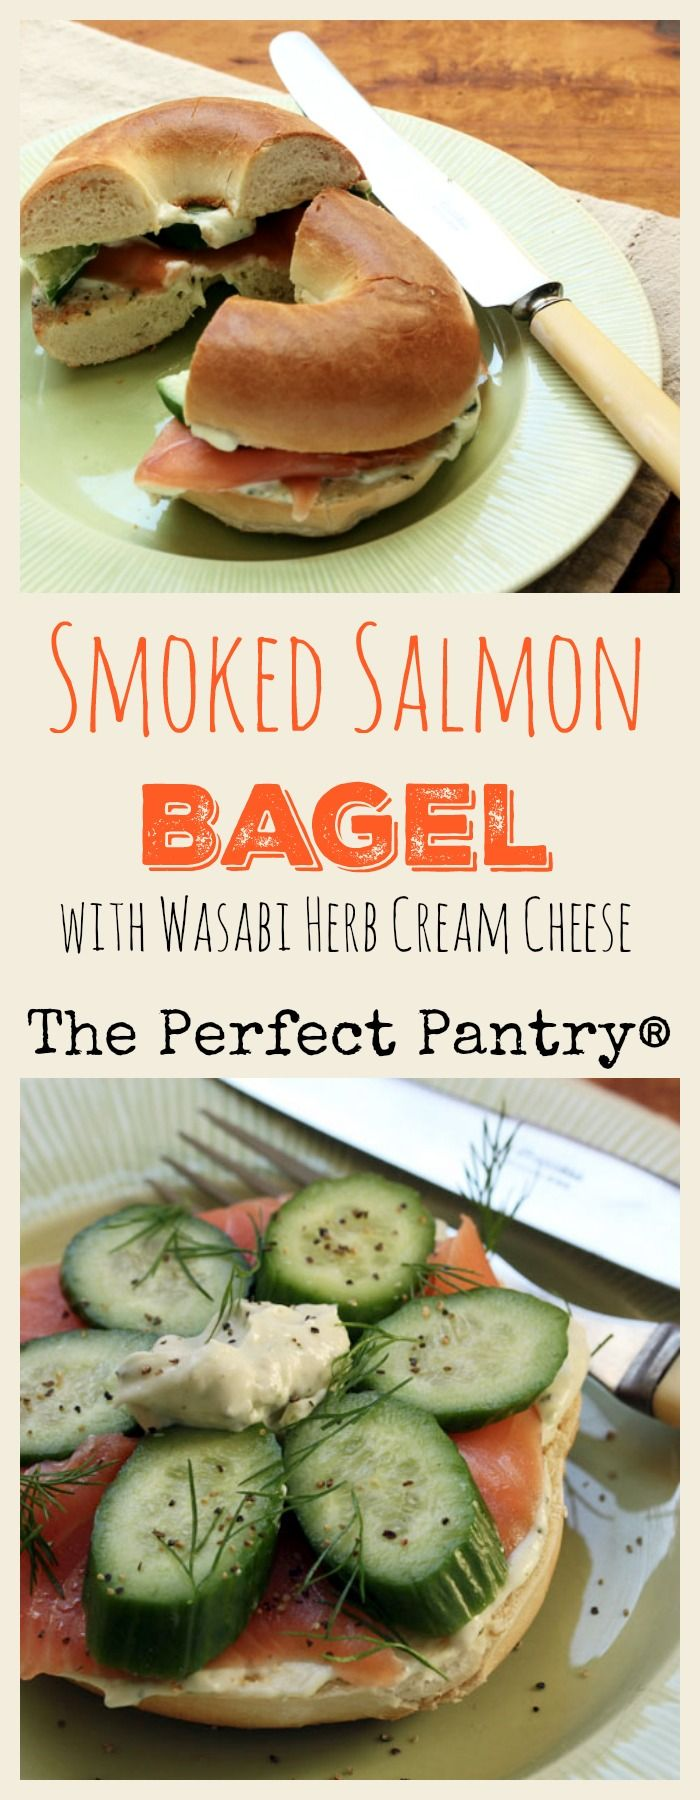 Smoked salmon bagel with amazing wasabi herb cream cheese, a brunch delight! from ThePerfectPantry.com